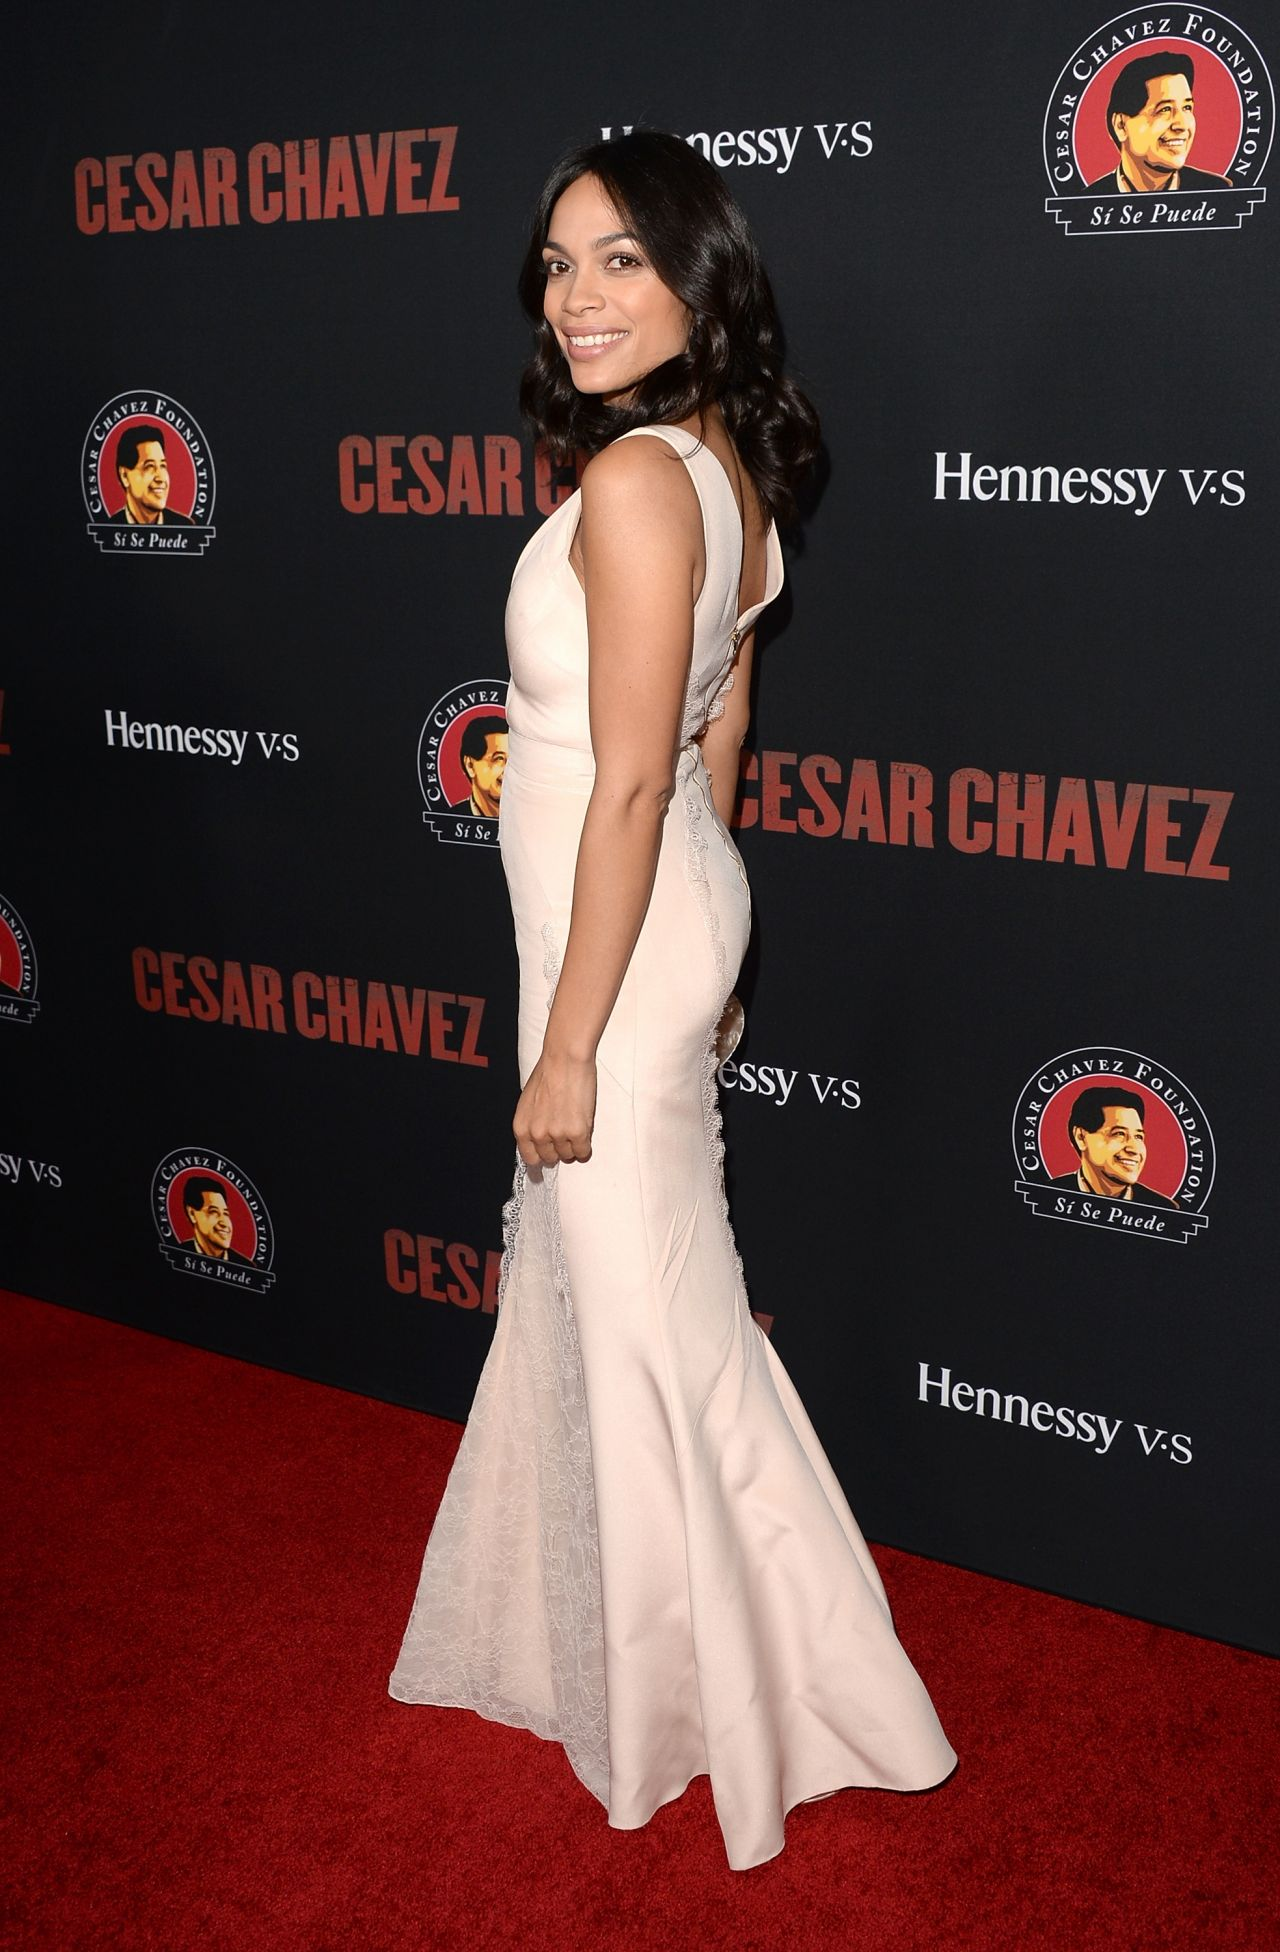 Rosario Dawson on Red Carpet - Cesar Chavez Premiere in Hollywood